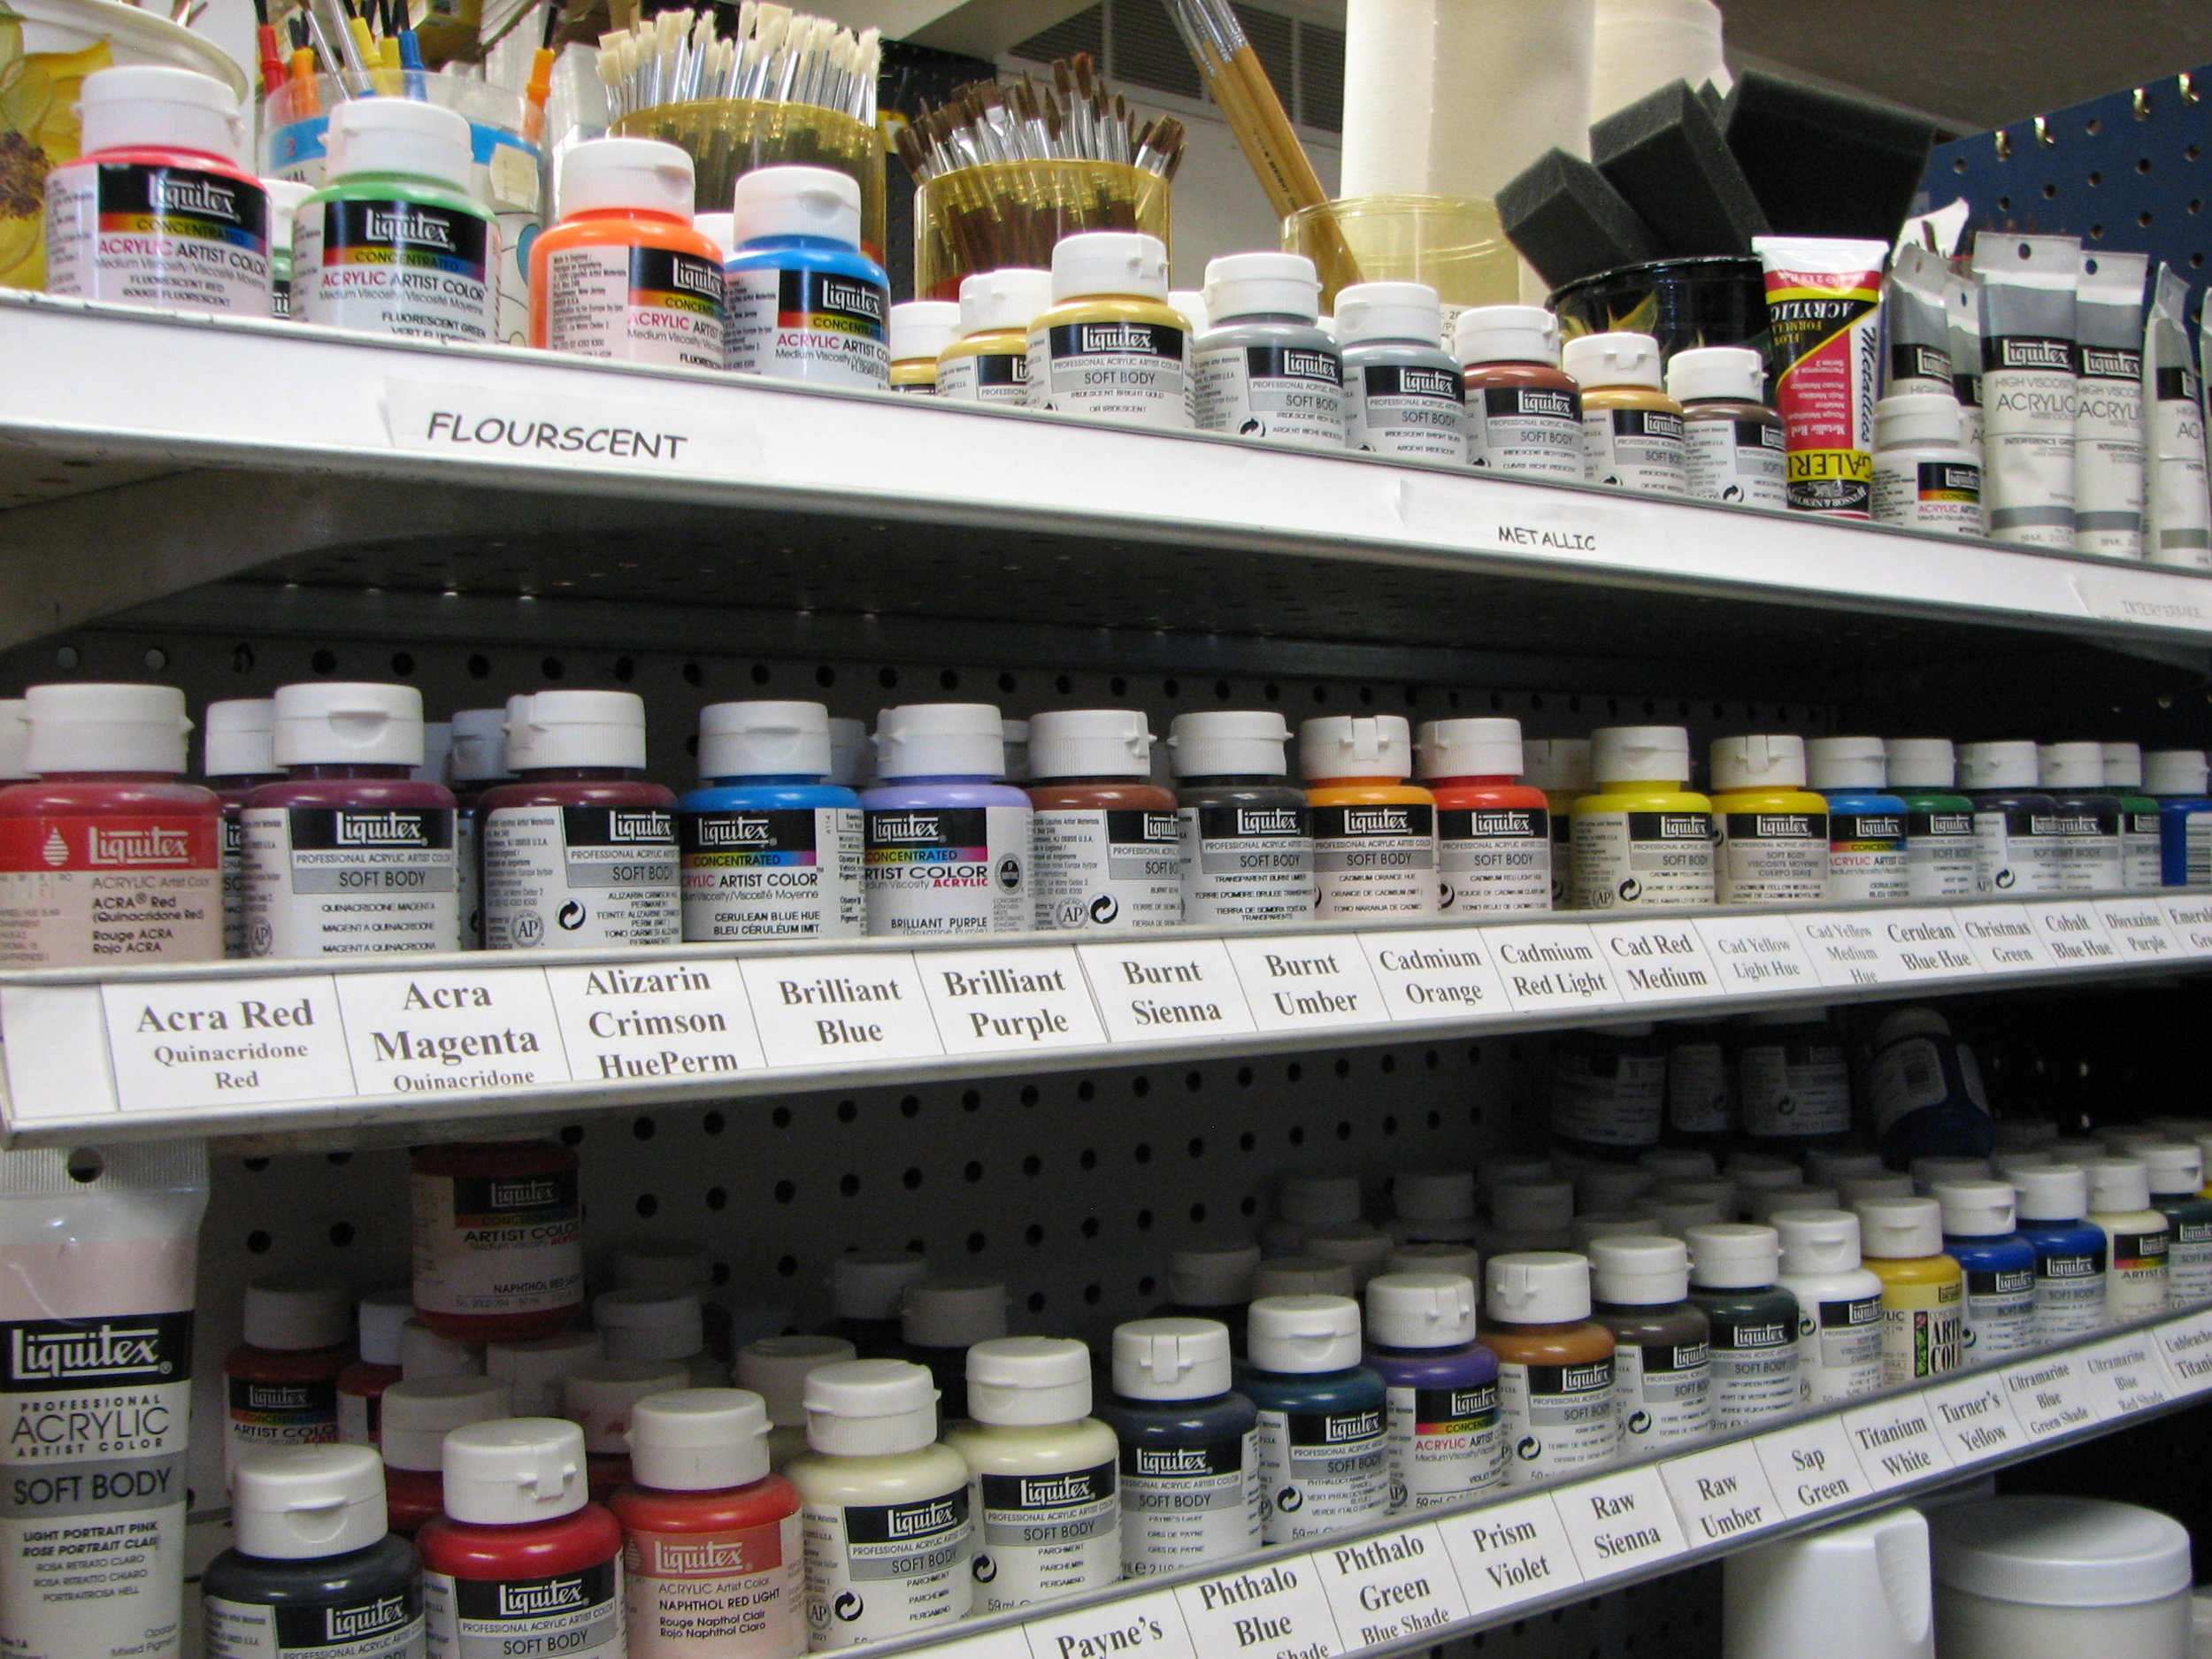 Liquitex paint in jars